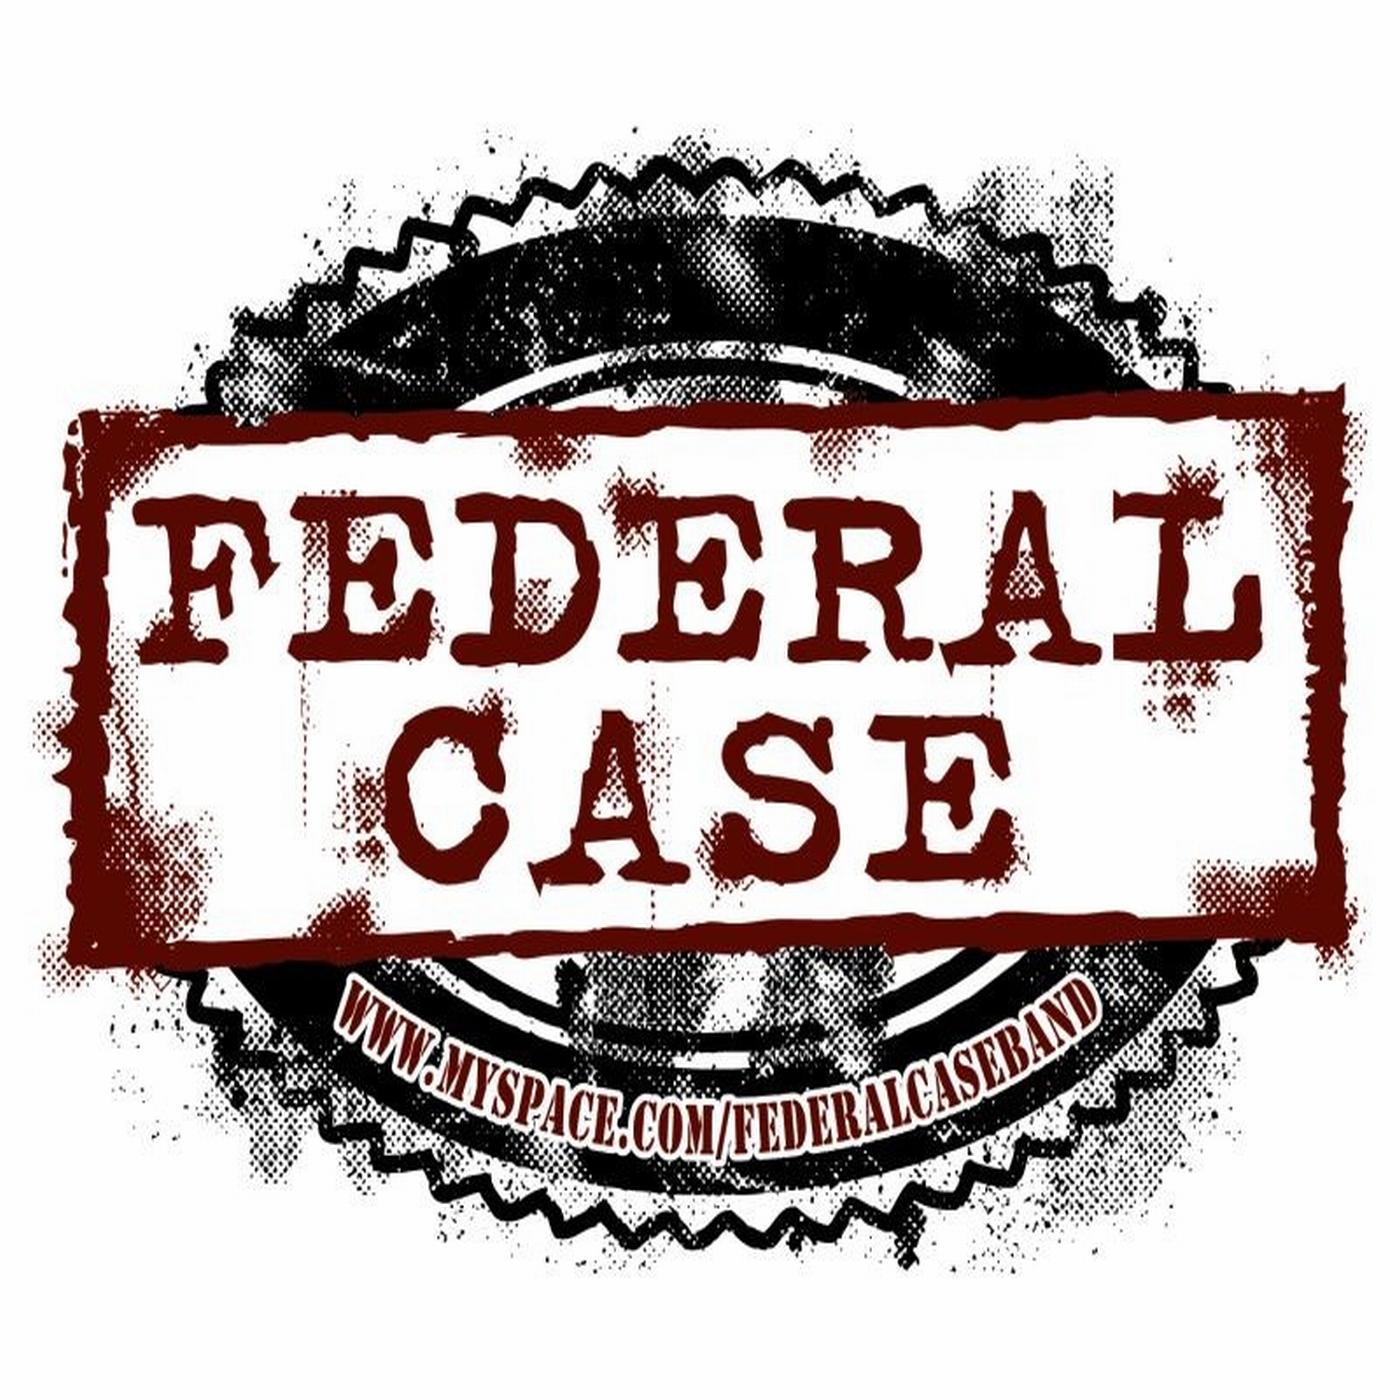 Federal Case (s/t demo -07)